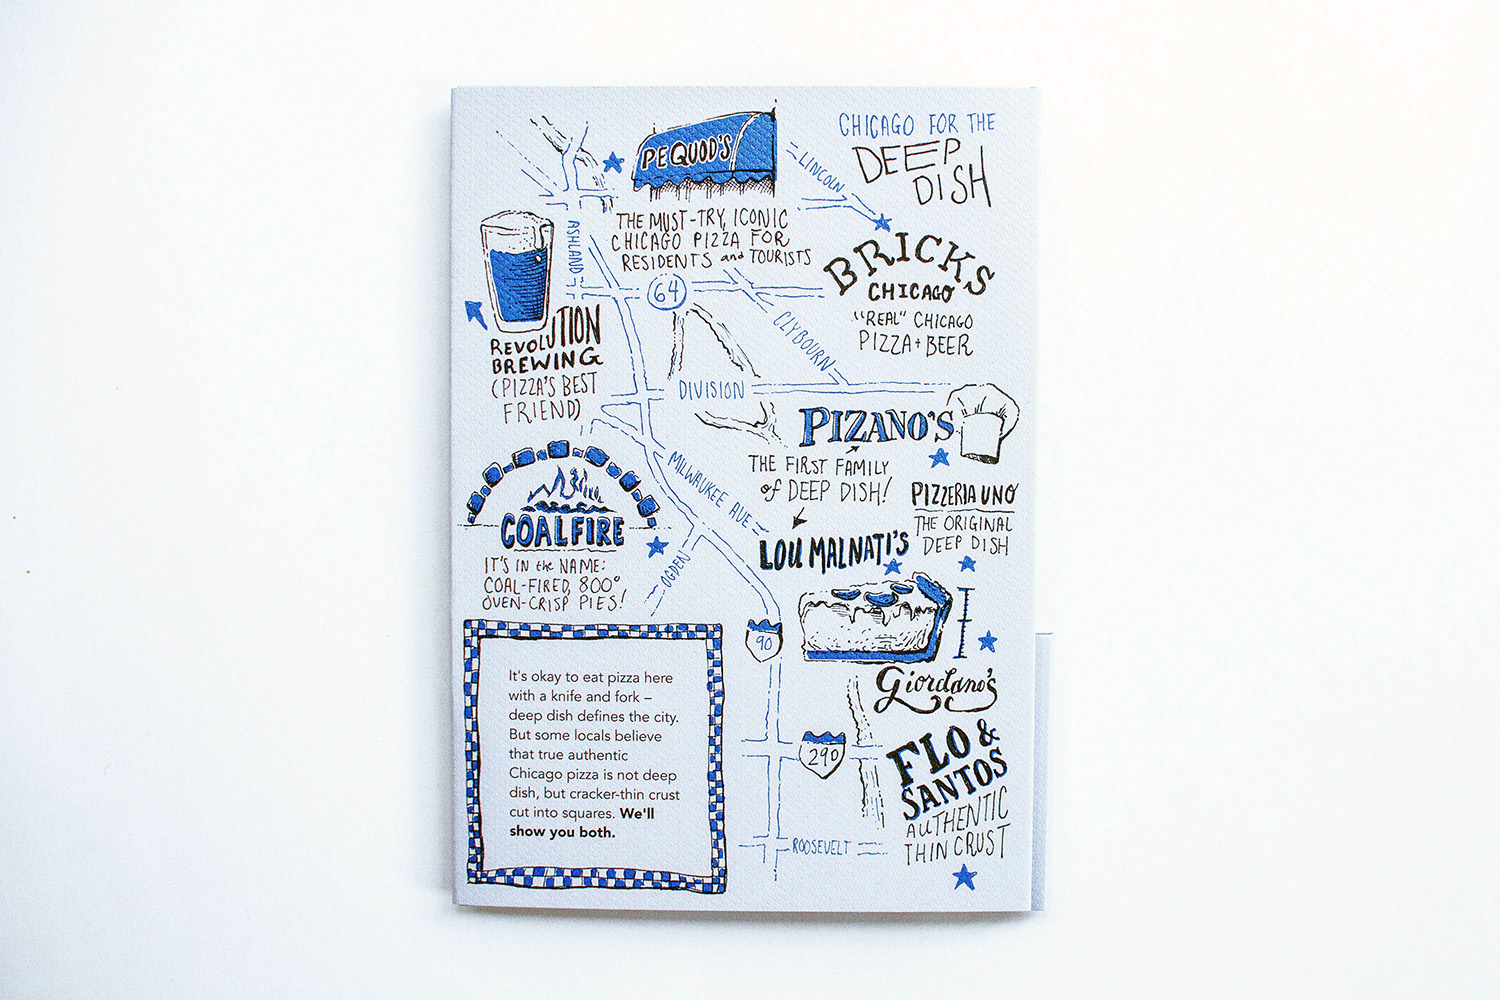 Illustrated map of chicago, hand drawn and hand lettered, for people looking for deep dish pizza. Features revolution brewing, Pequod's, bricks chicago, pizano's, lou malnati's, giordano's, coalfire, and flo and santos thin crust.